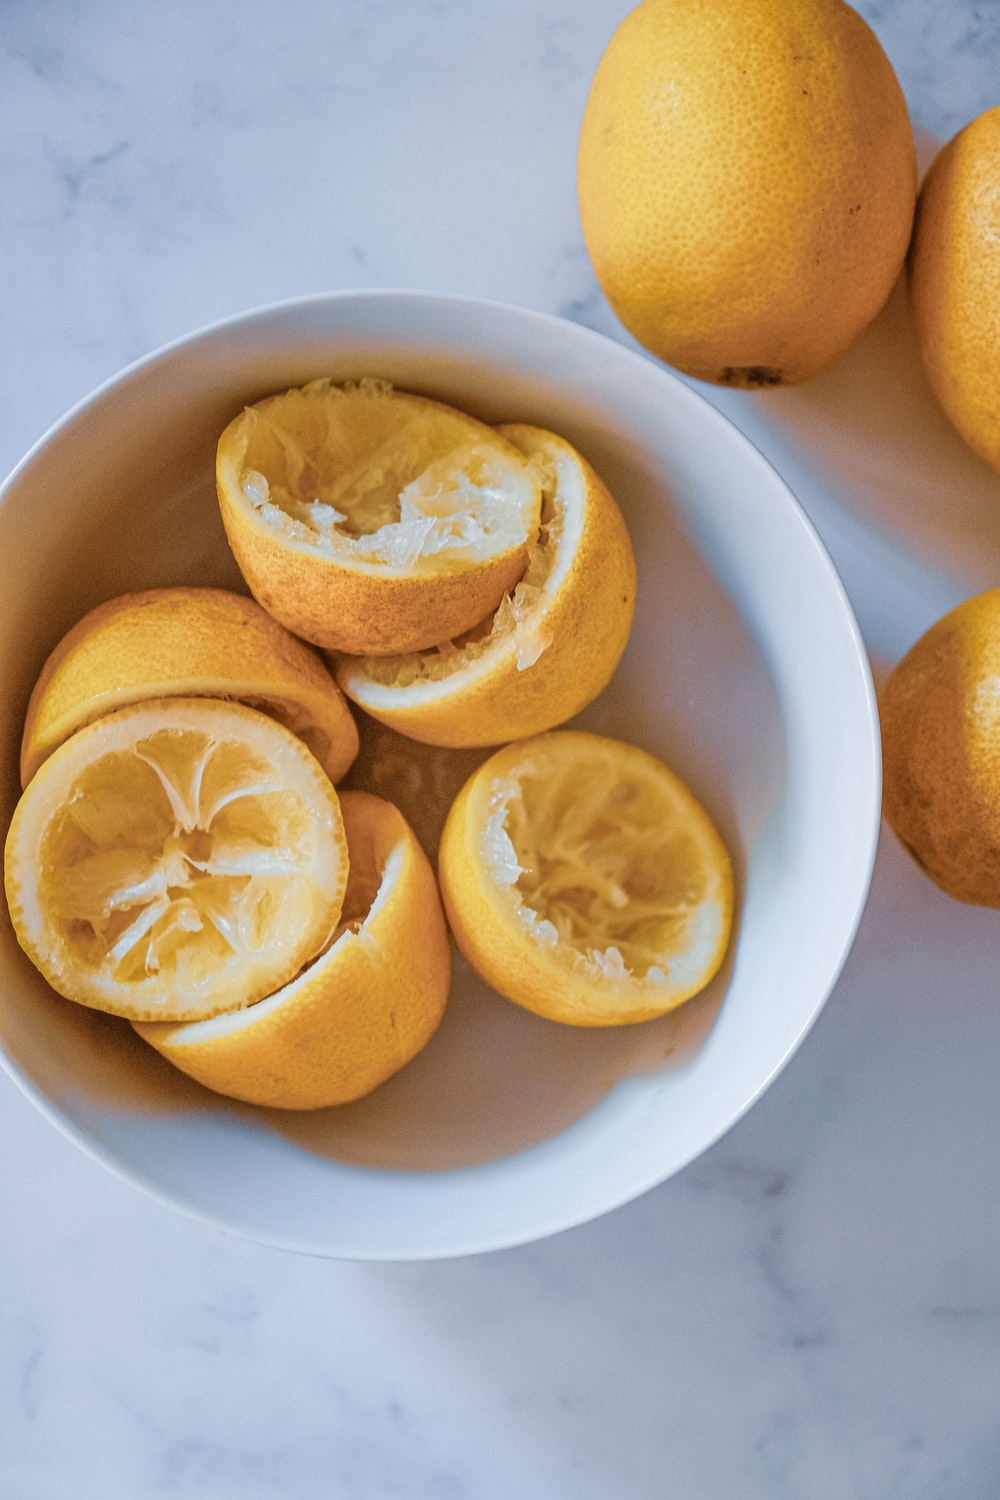 slices of yellow lemons